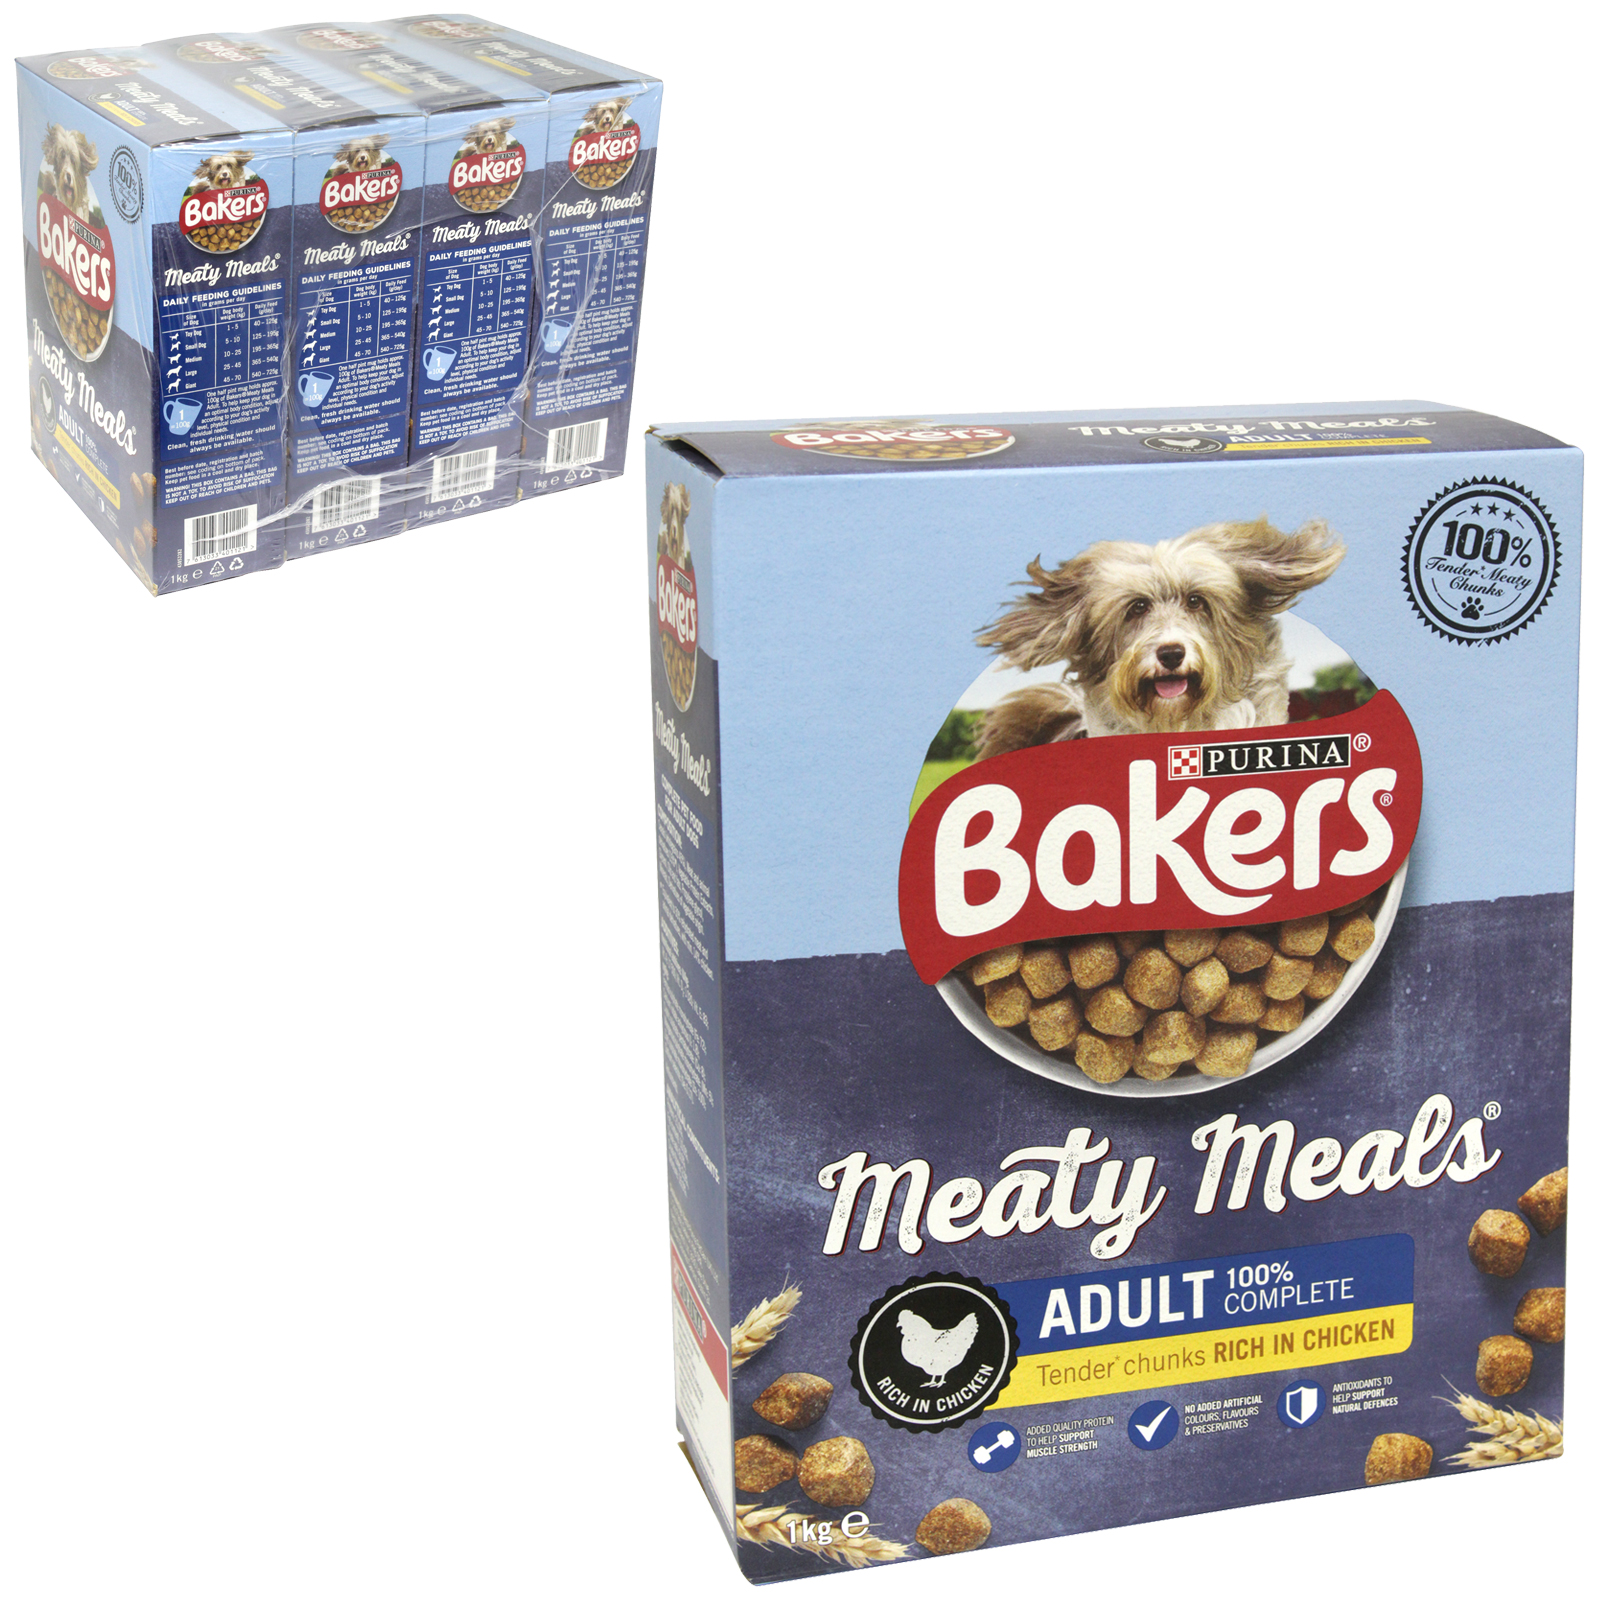 BAKERS MEATY MEALS 1KG ADULT CHICKEN X4